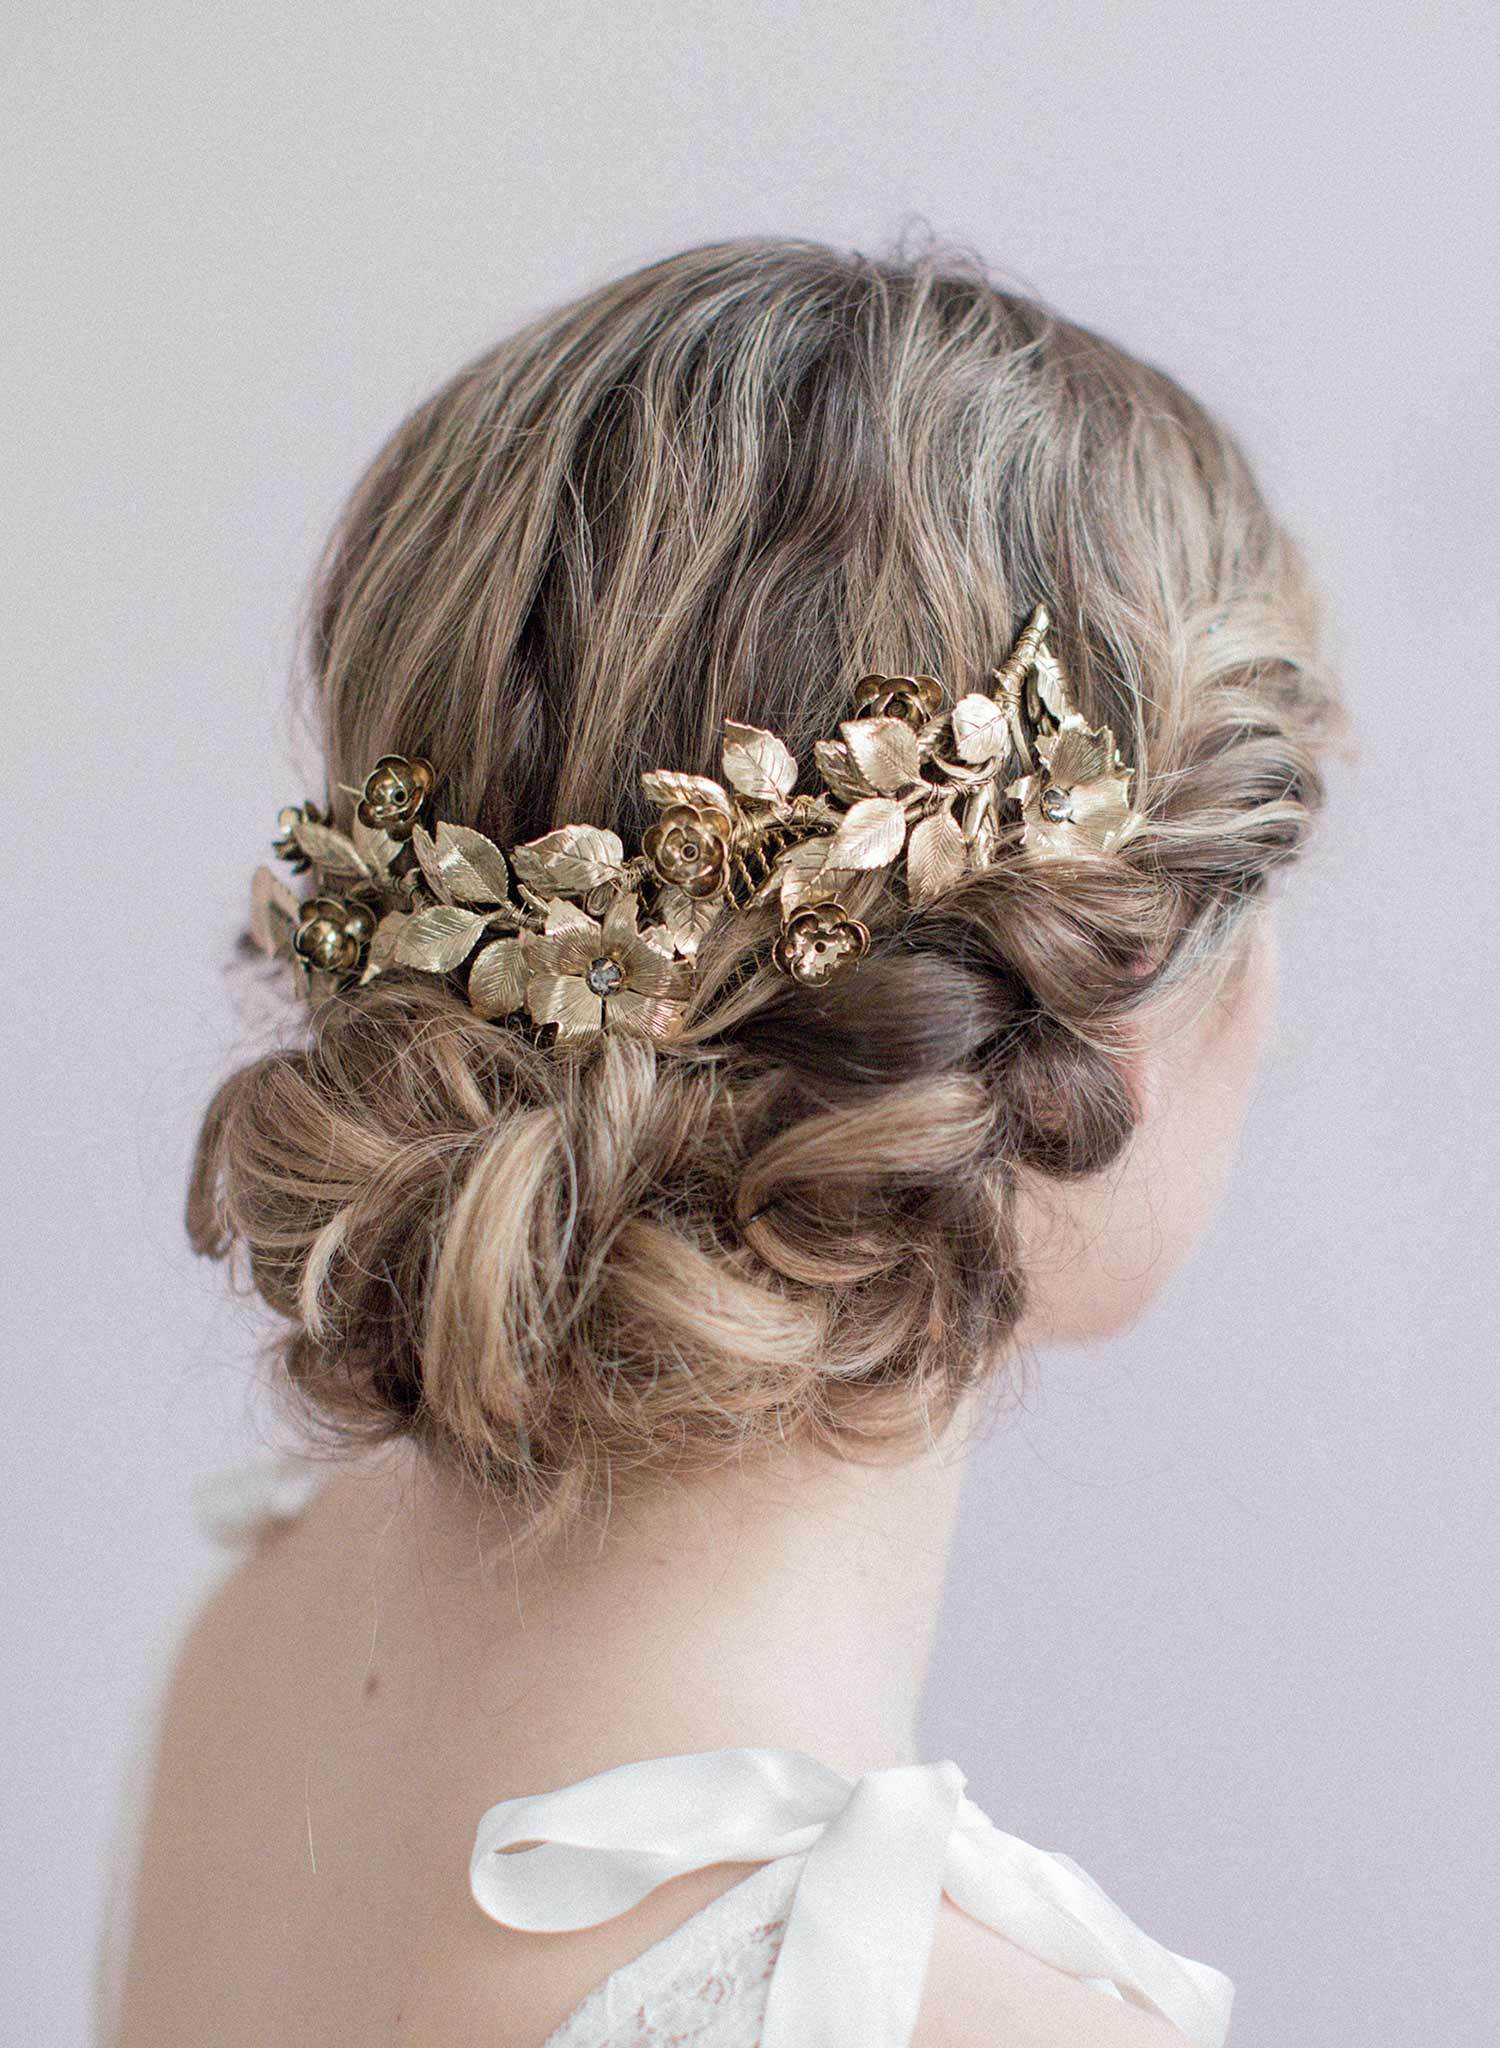 Amazing Floral hair accessories for holidays 2018 5